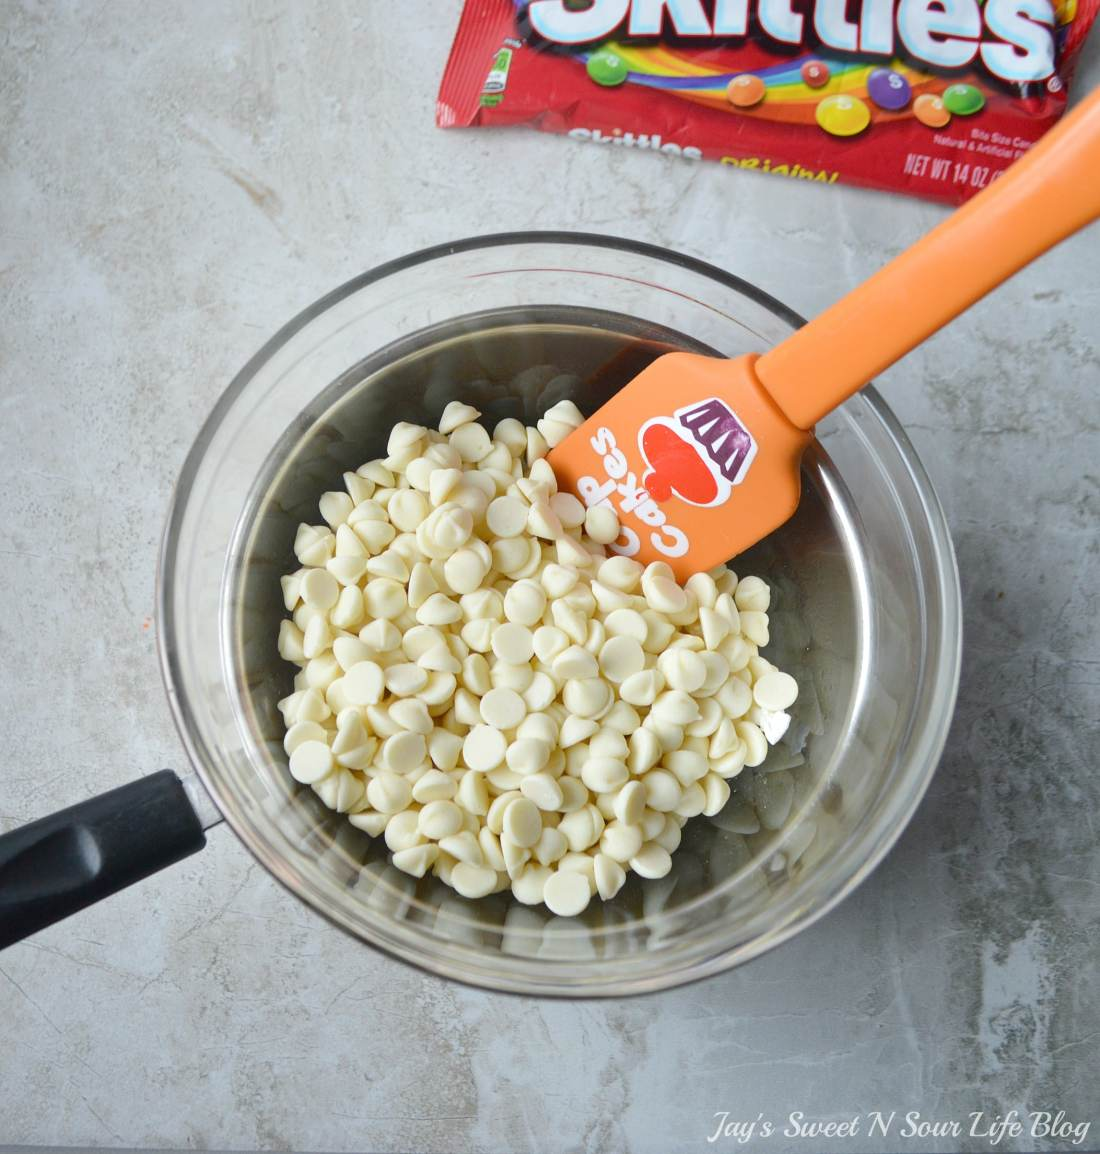 Game Day Skittles Inspired Snacks popcorn step 3. Game Day Skittles Inspired Snacks that all of your friends and family can enjoy! Recipes include skittles popcorn, football cupcakes and more!